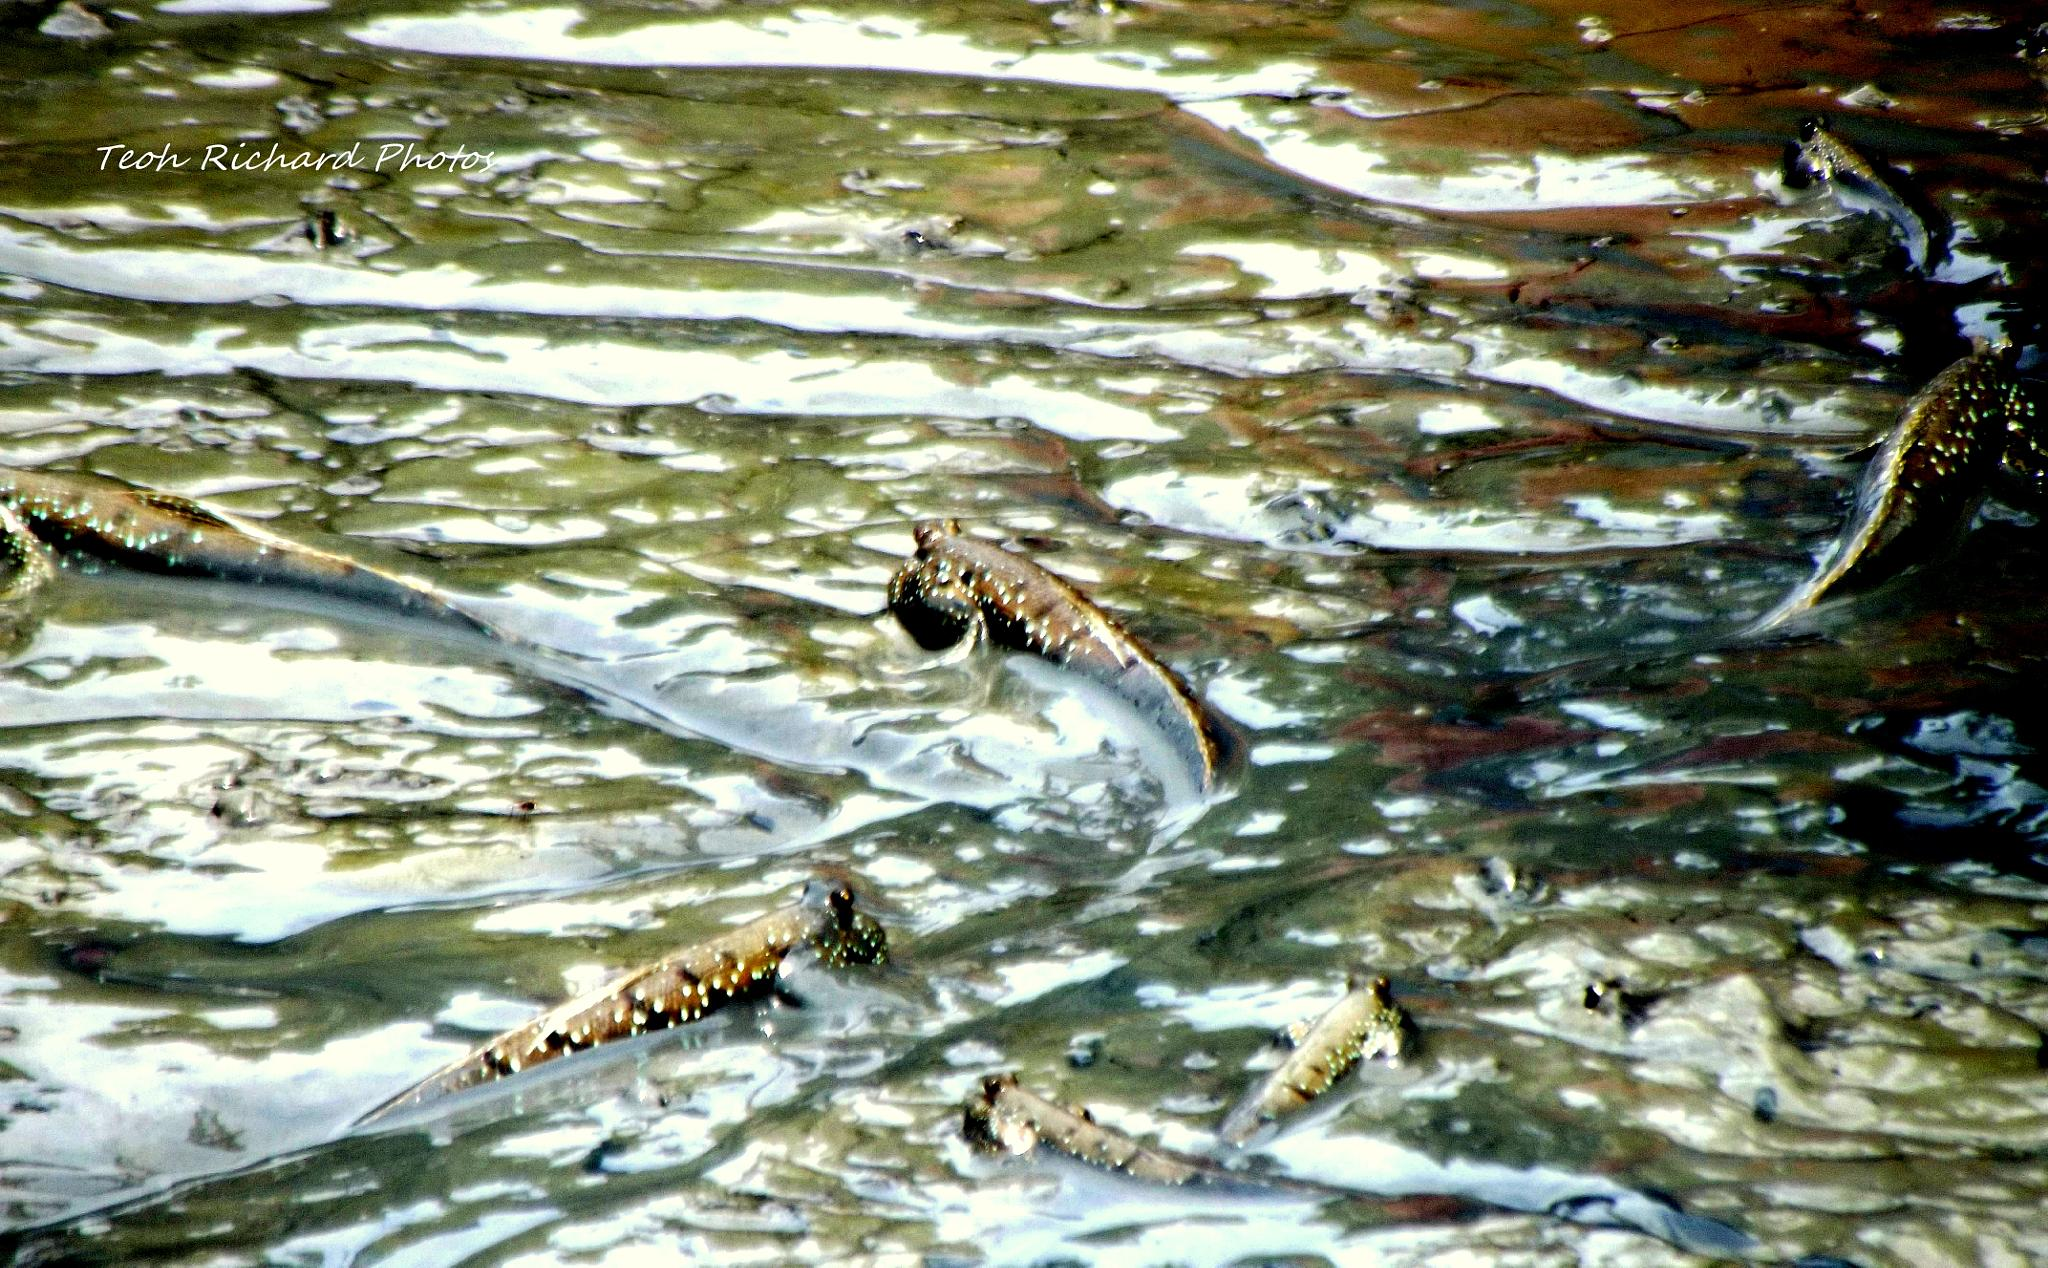 Mud Skippers by teoh.richard.15